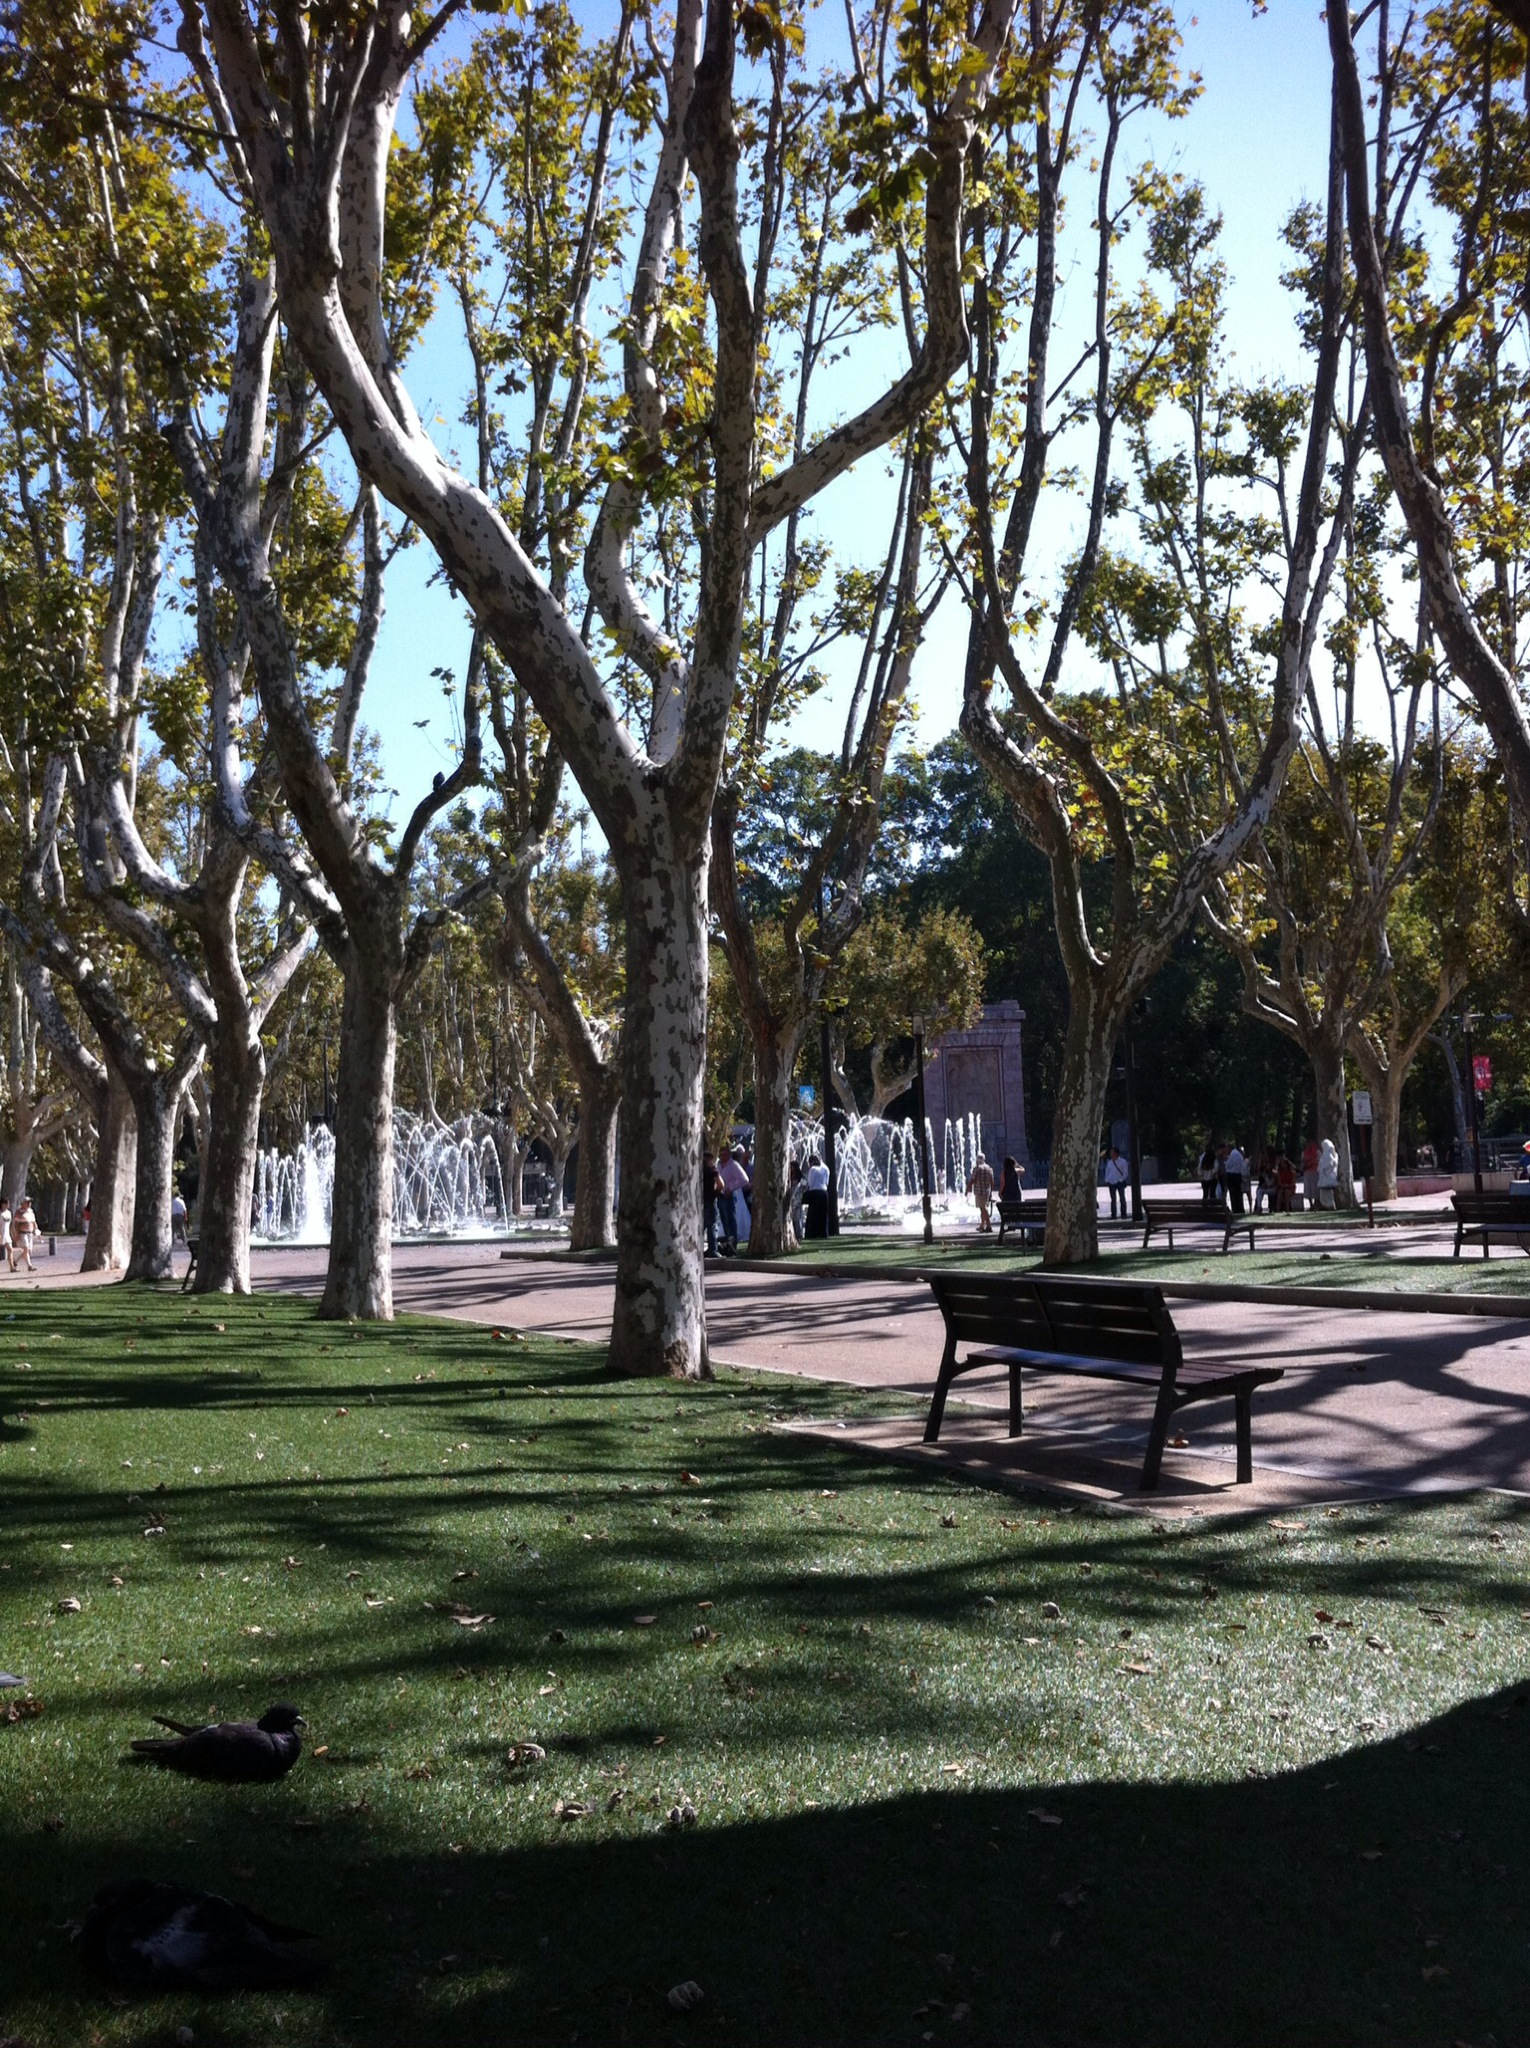 Trees and fountains in Perpignan